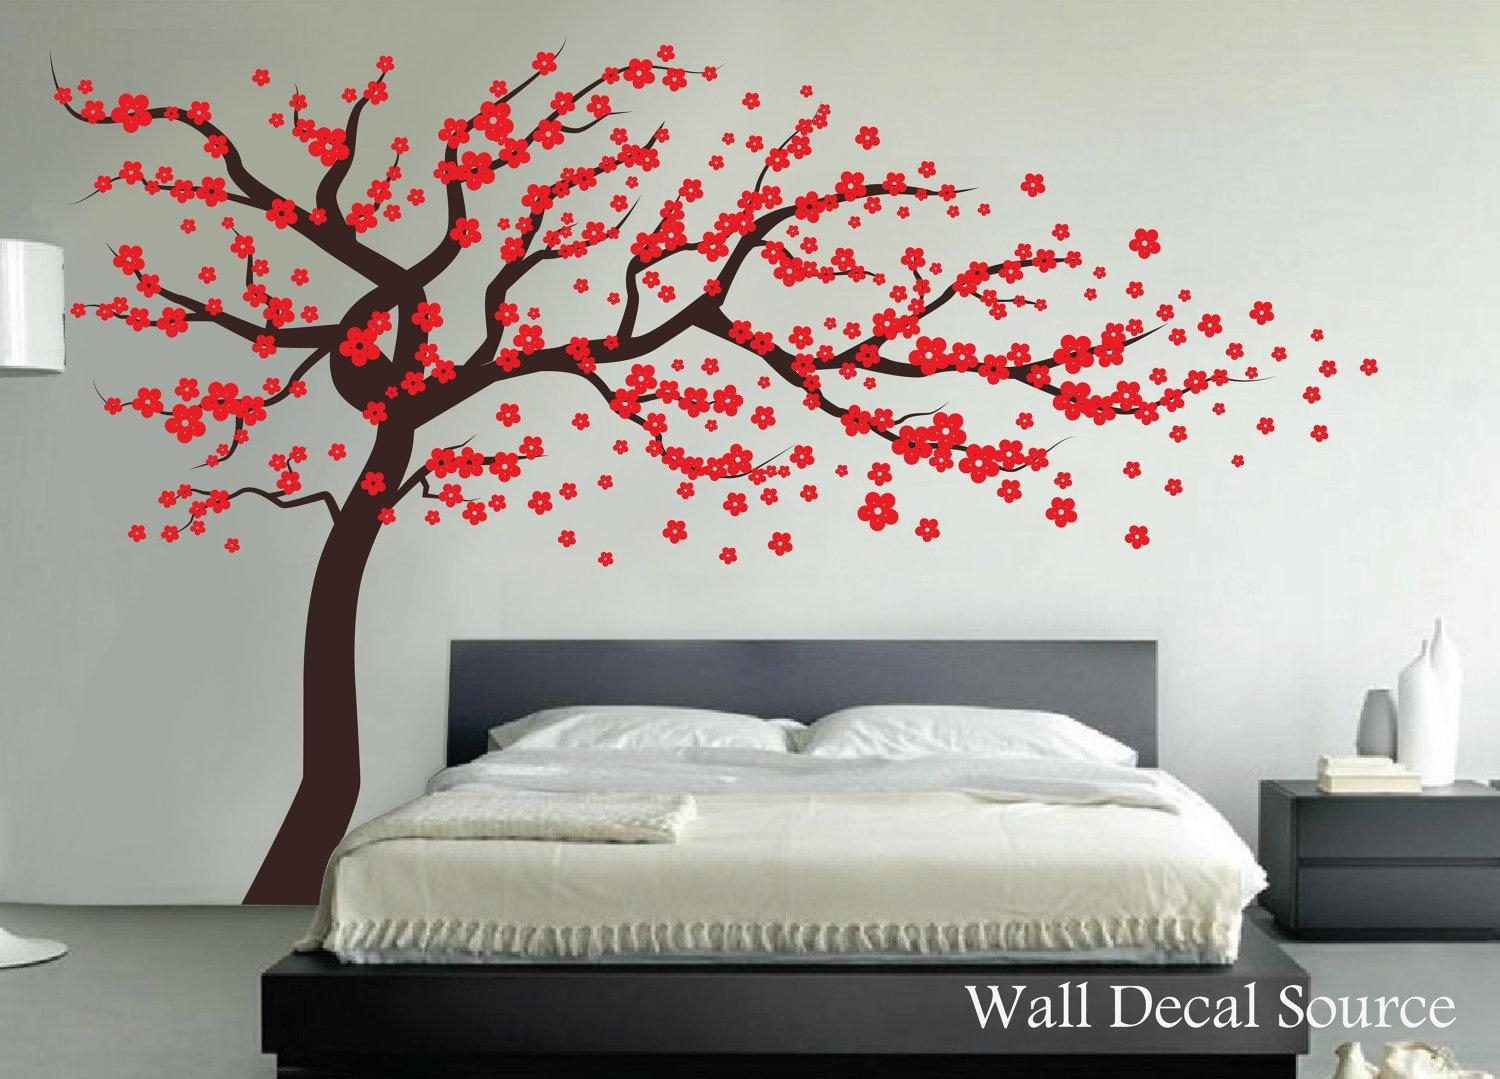 23 Japanese Cherry Blossom Wall Decal, Birds, Flower Cherry for Red Cherry Blossom Wall Art